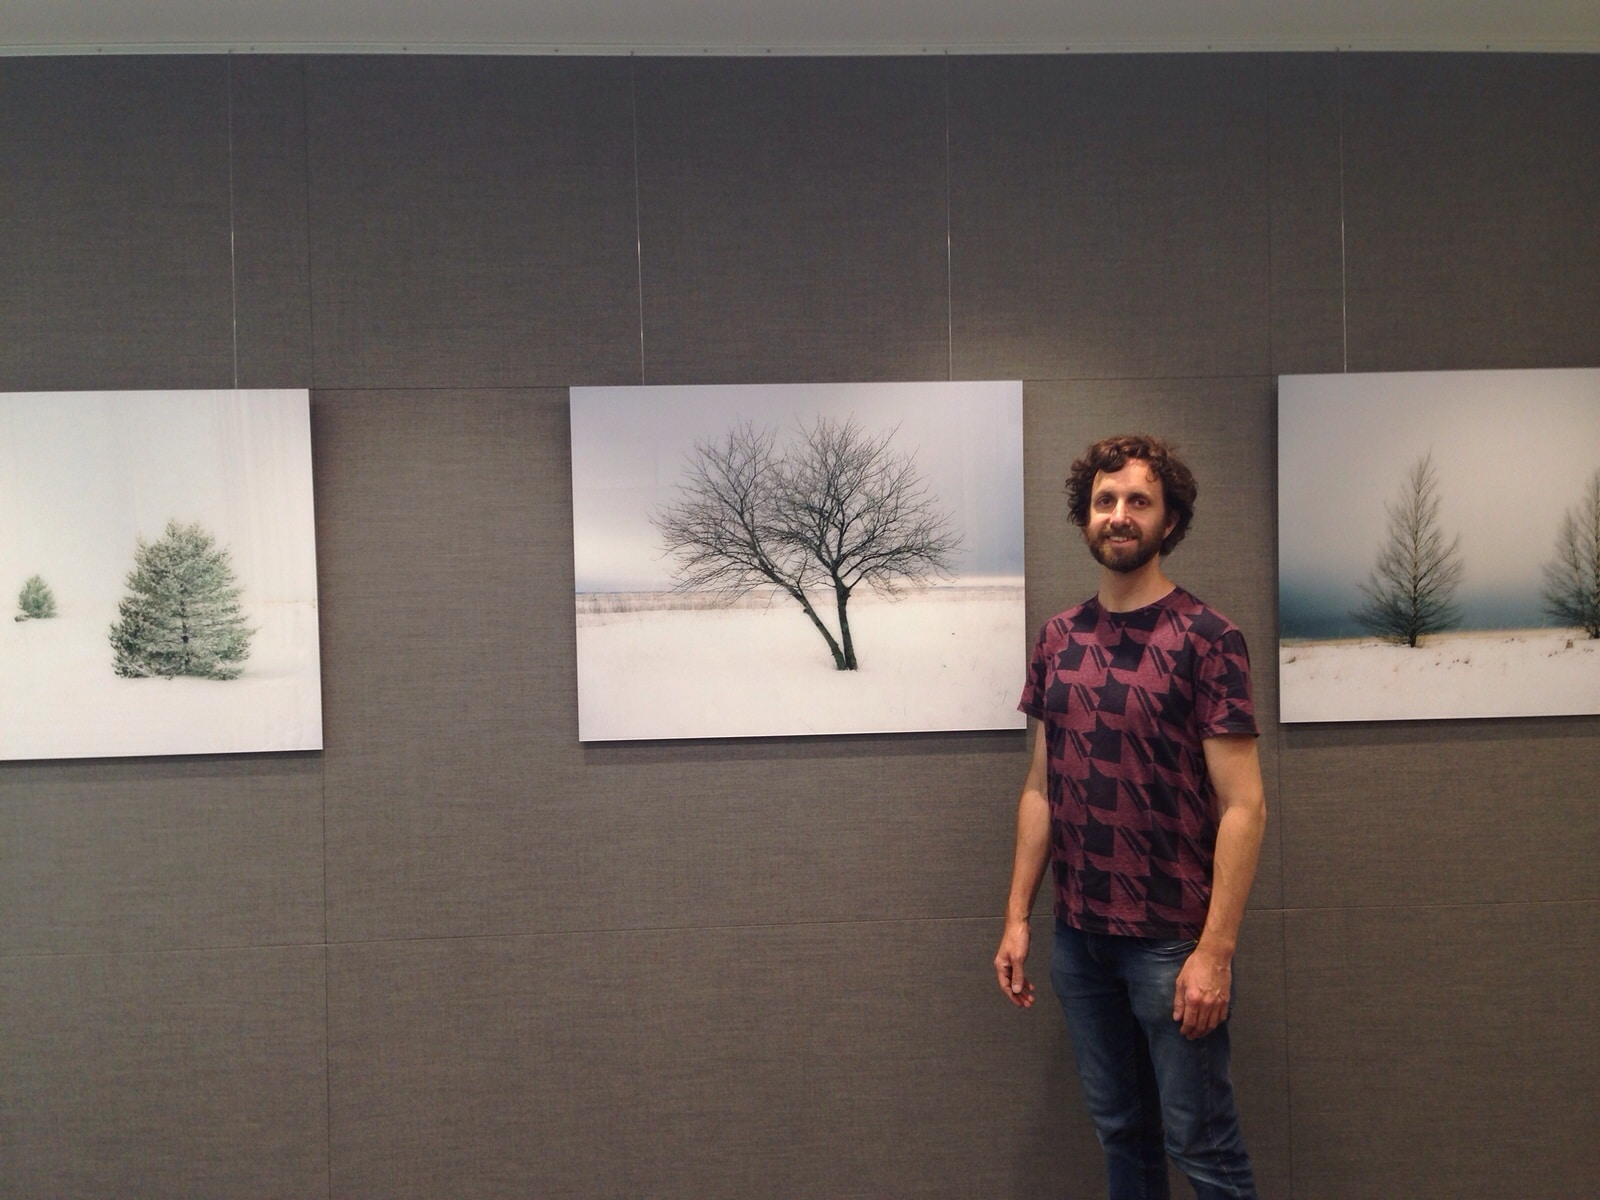 Here's me installing work by Annabelle Nicoll Photography in the office of Ice Futures London. Find her calm inducing landscapes for sale at Lumitrix